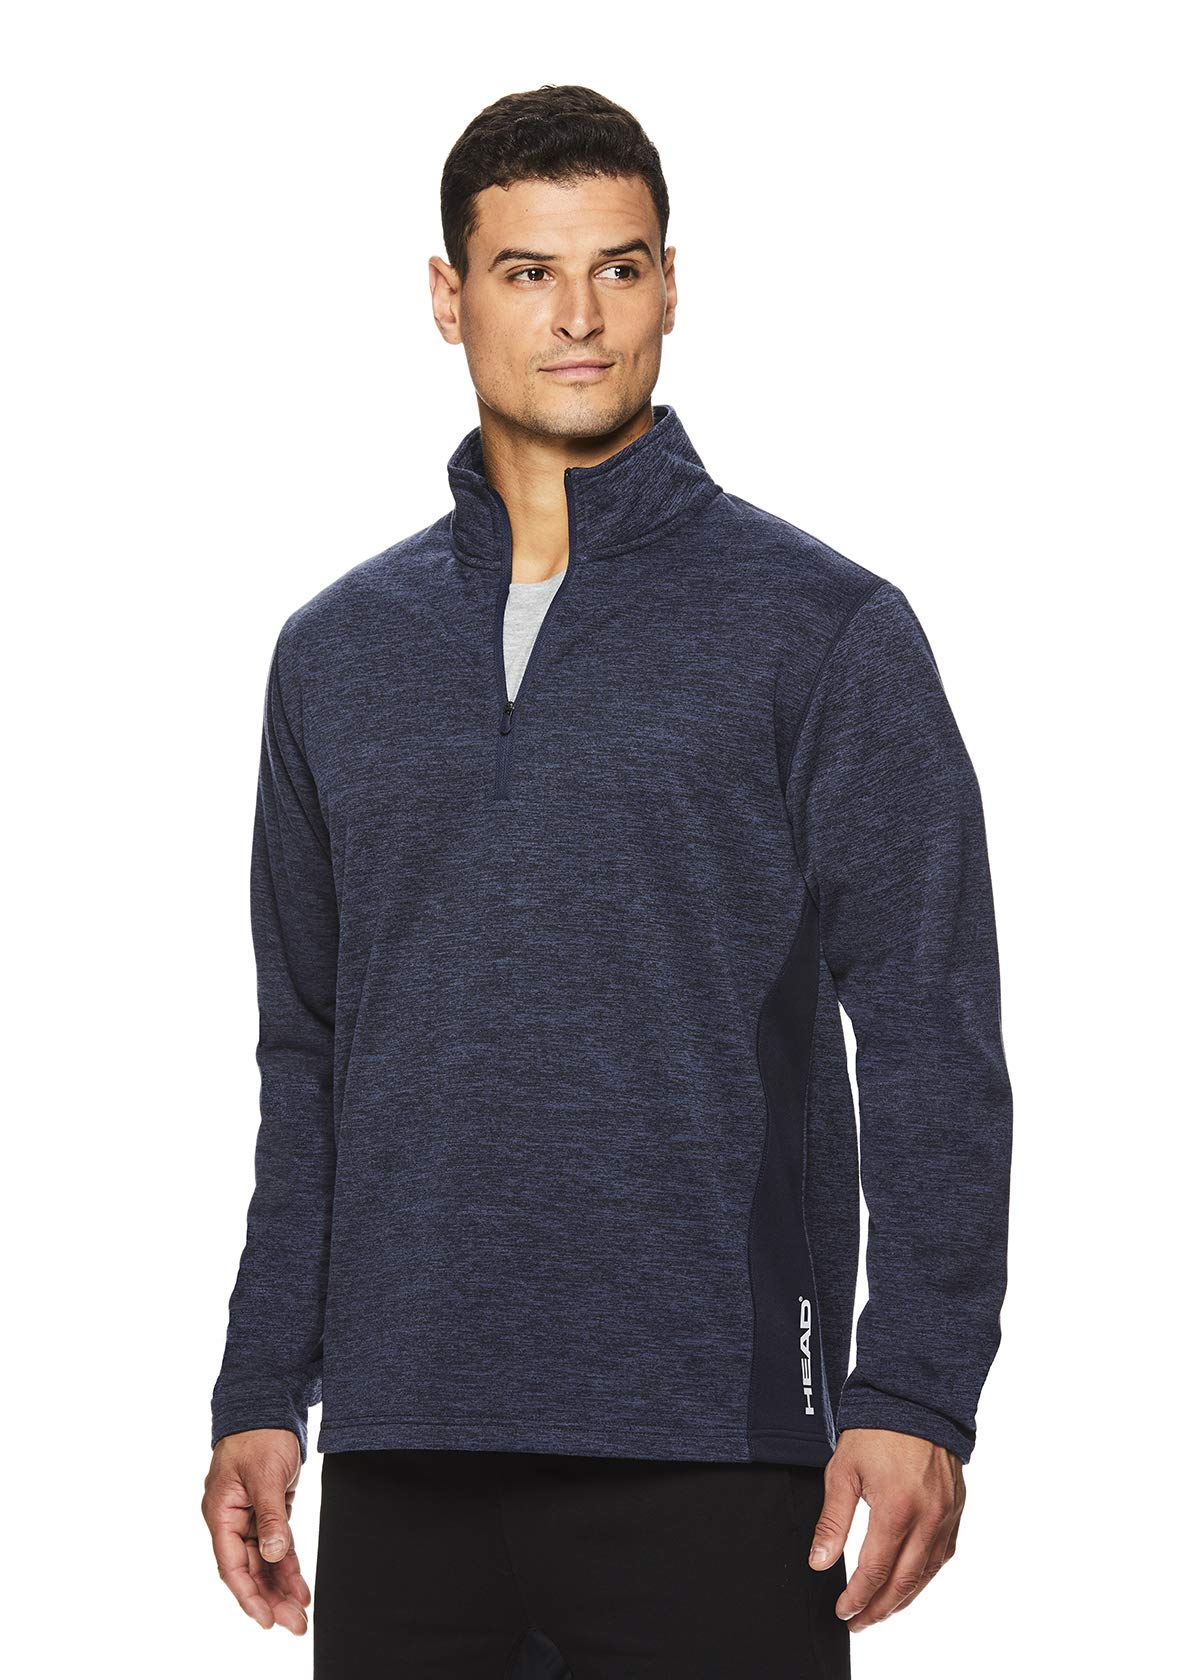 HEAD Men's 1/4 Zip Up Activewear Pullover Jacket - Long Sleeve Running & Workout Sweater - Warm Up Navy Heather, Small